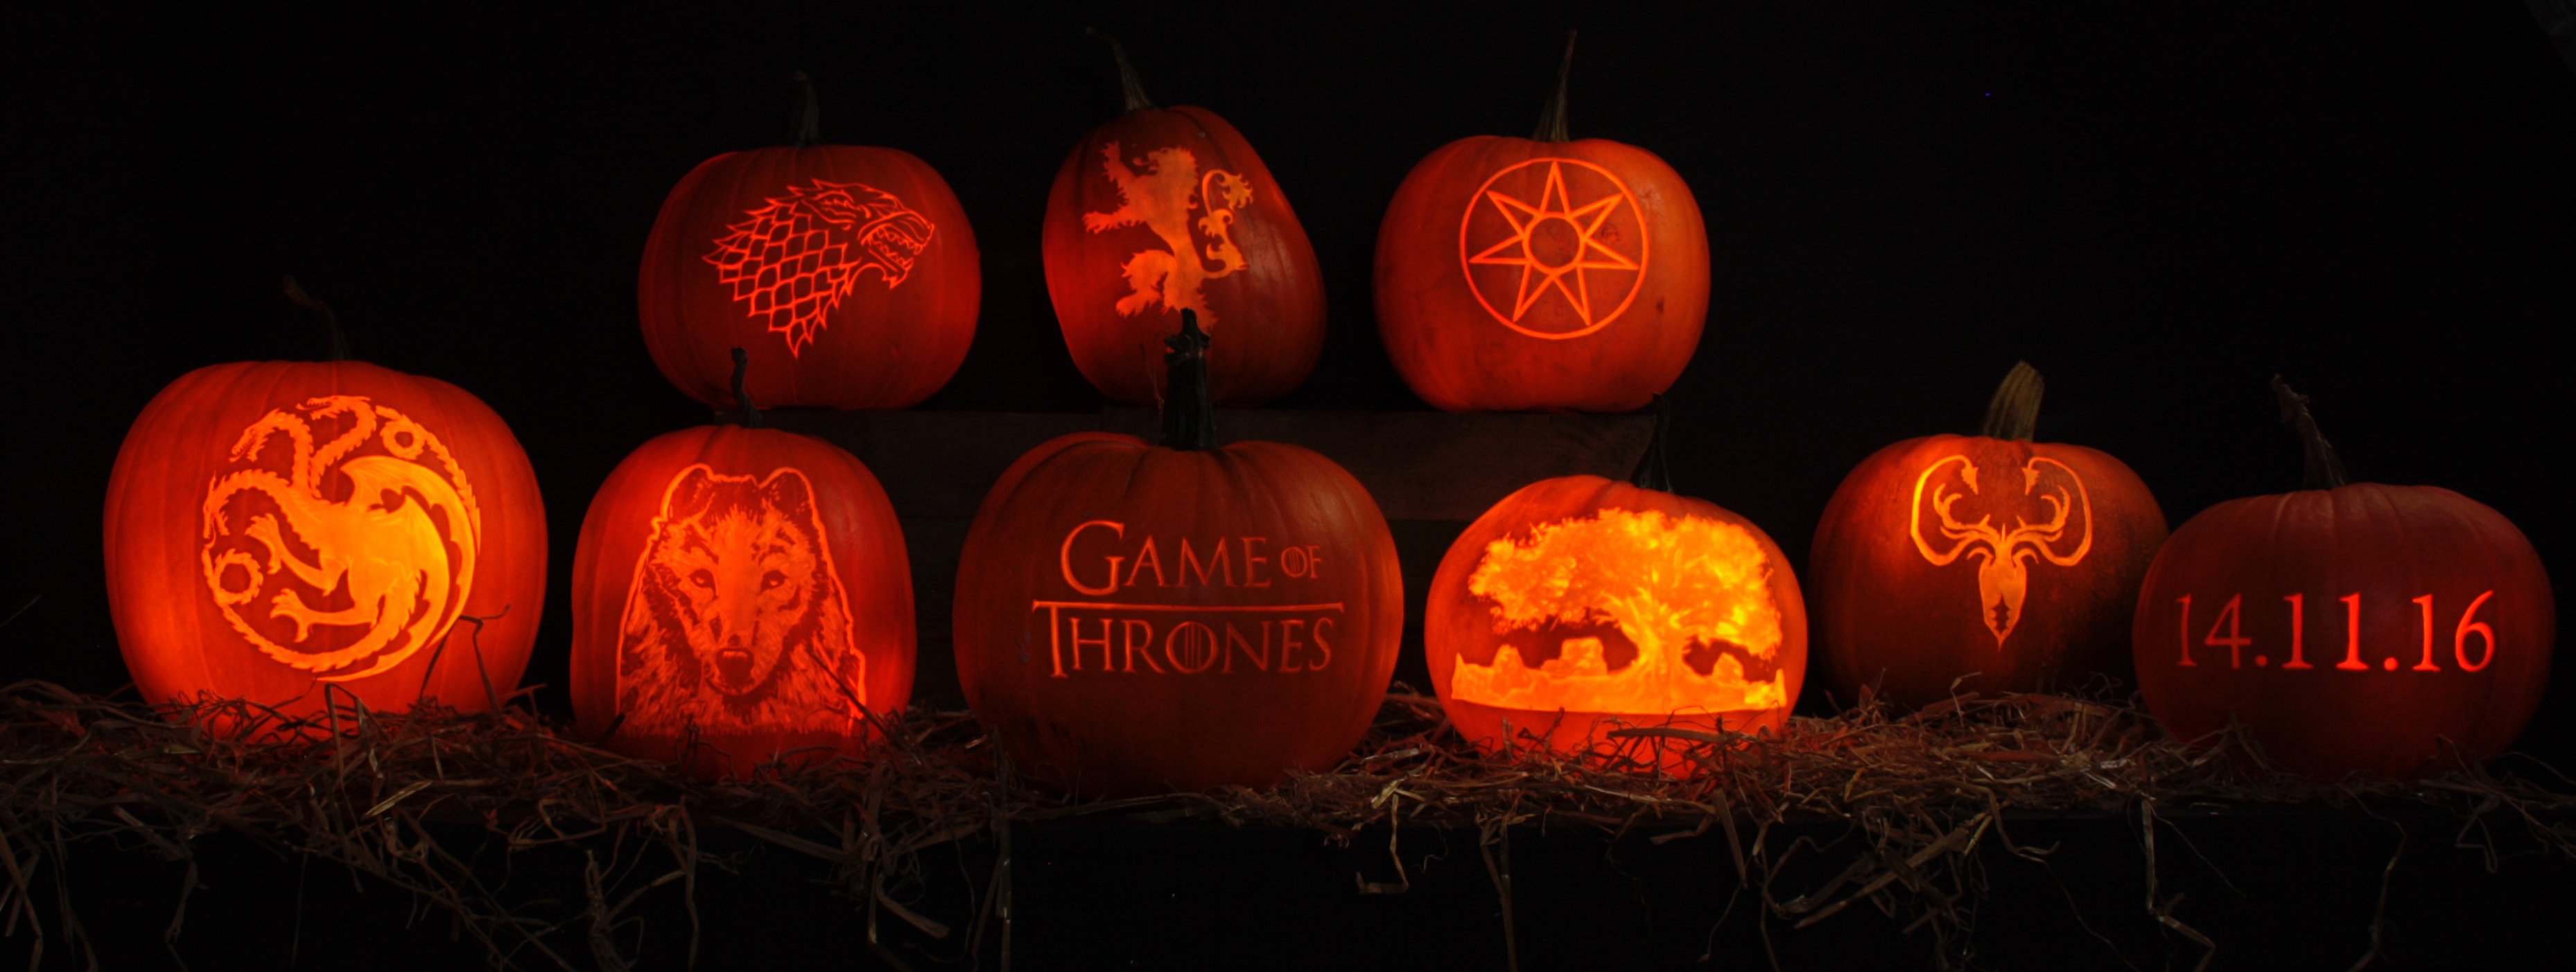 Game of Thrones stencil pumpkin carvings